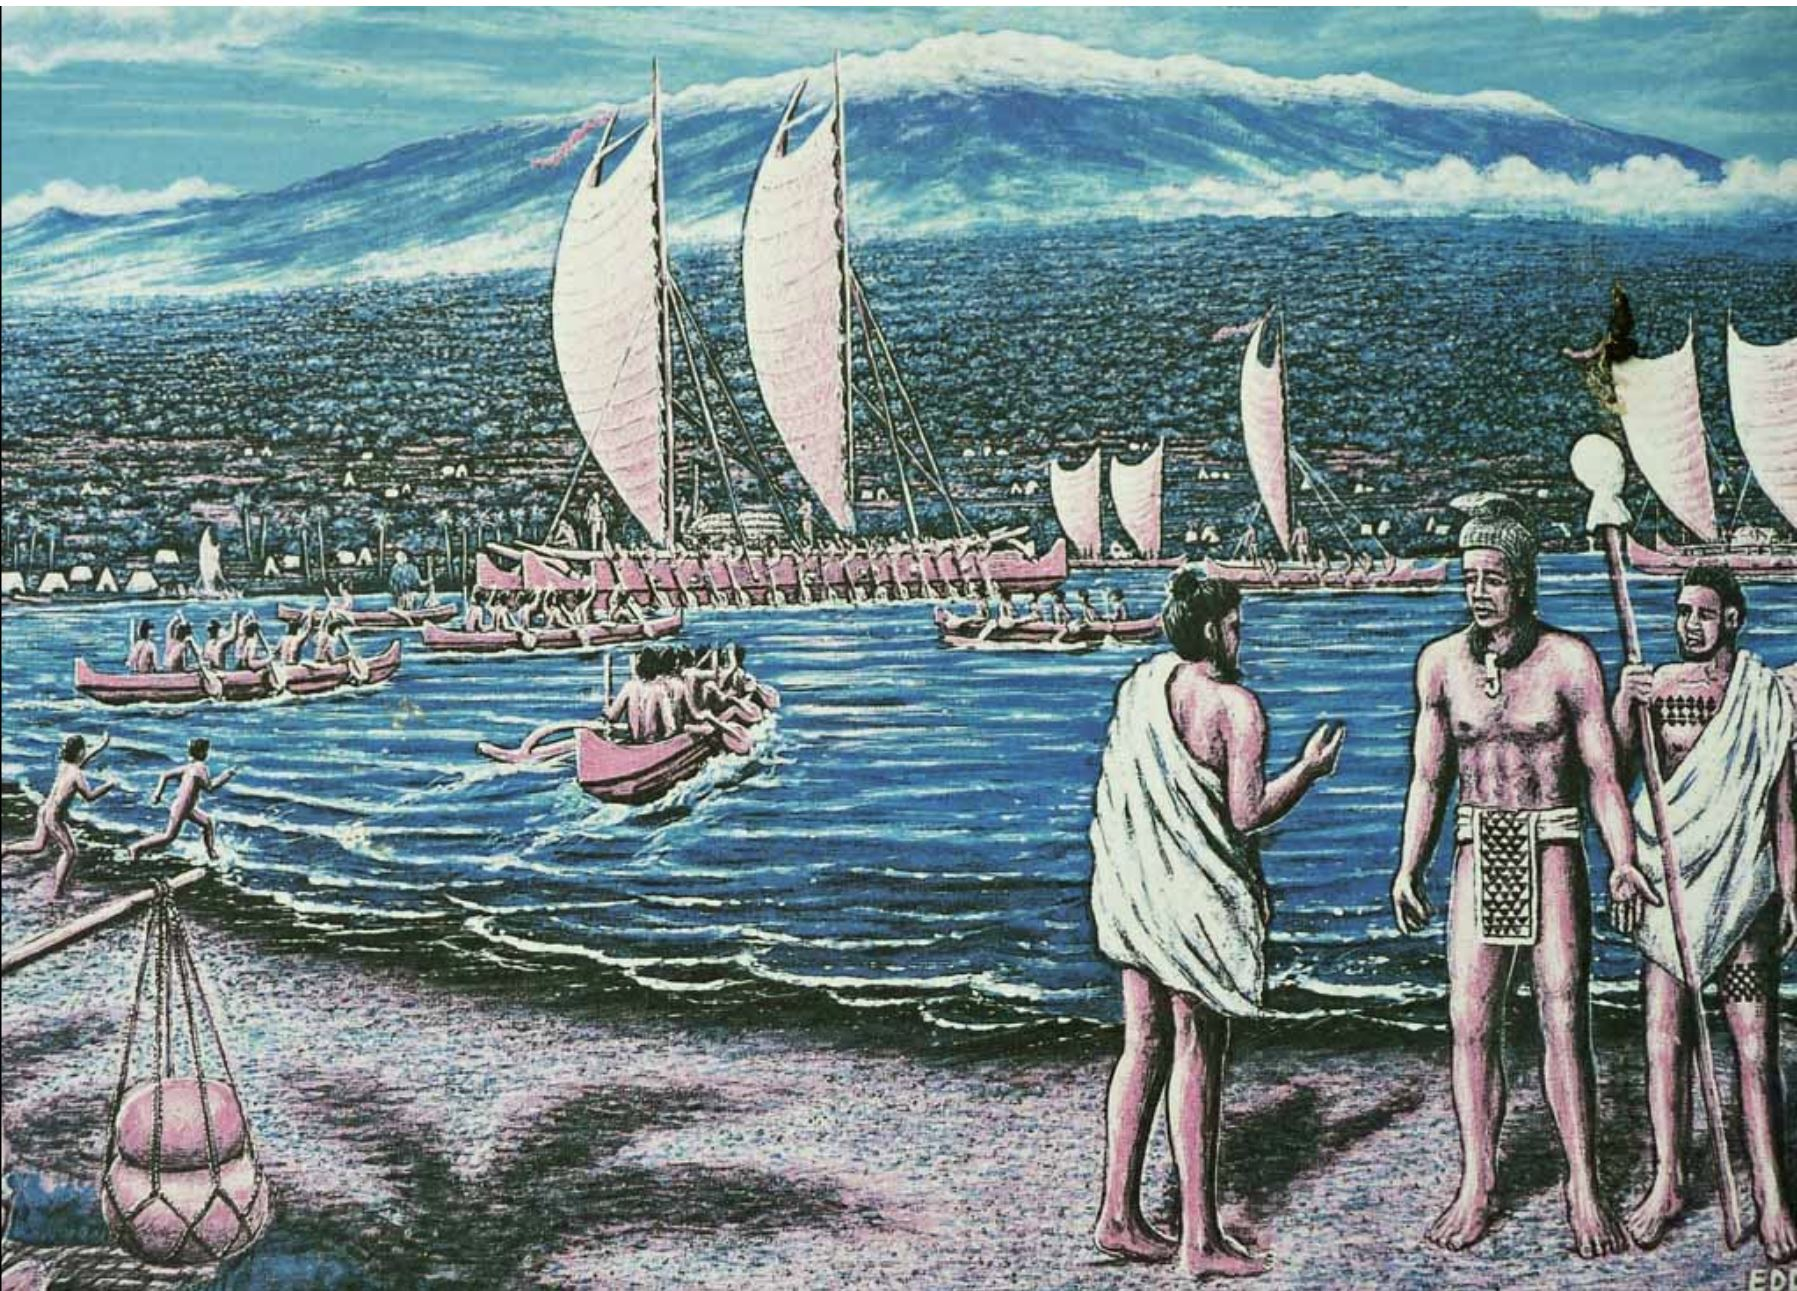 Painting depicting the murder of King Kiwala'o who was Kamehameha's cousin showing Kiwalao along the shoreline with the two priests sent to kill him and a fleet of Kamehameha's sailing canoes behind them